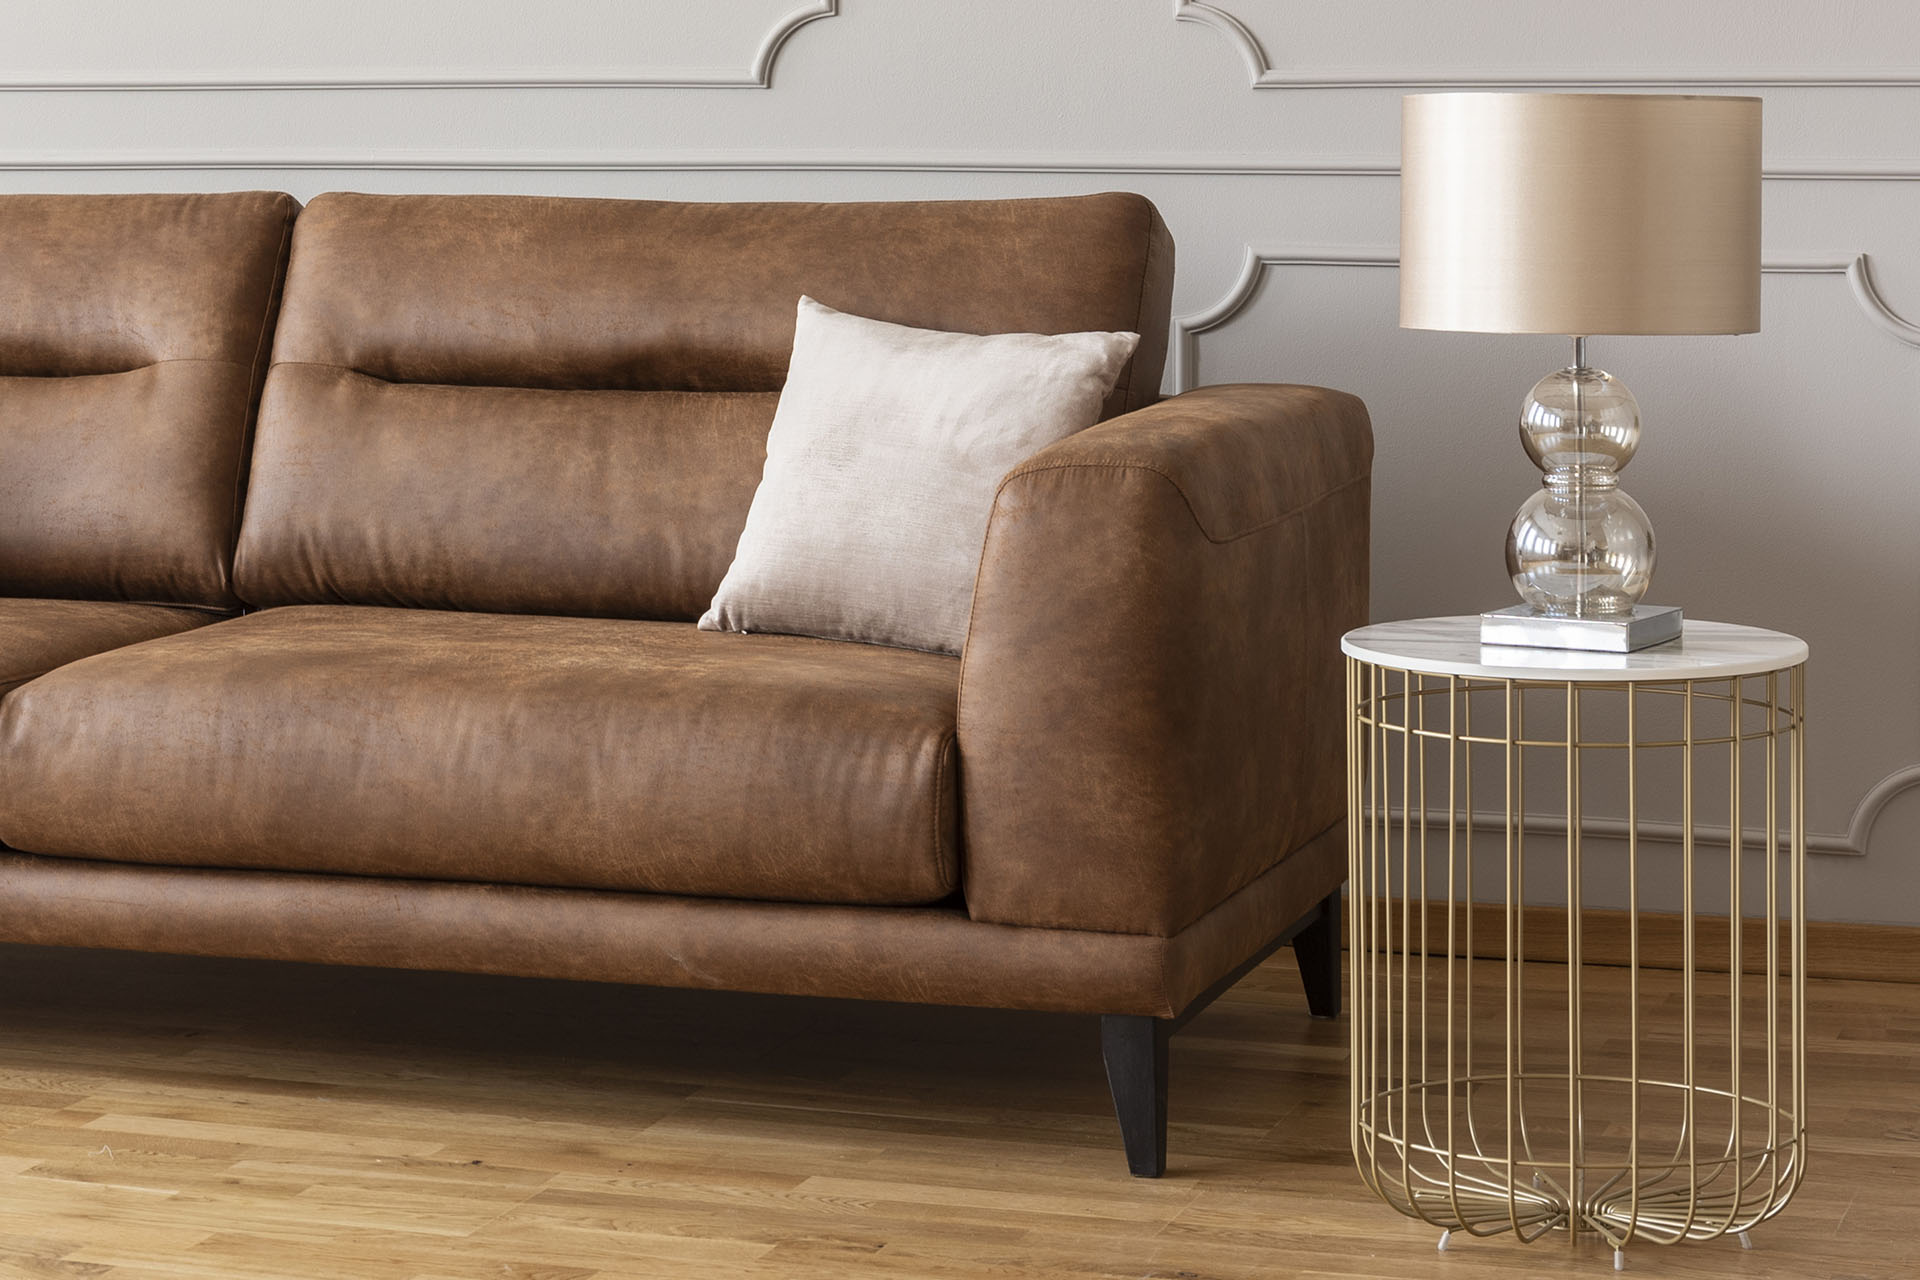 Stylish brown leather sofa